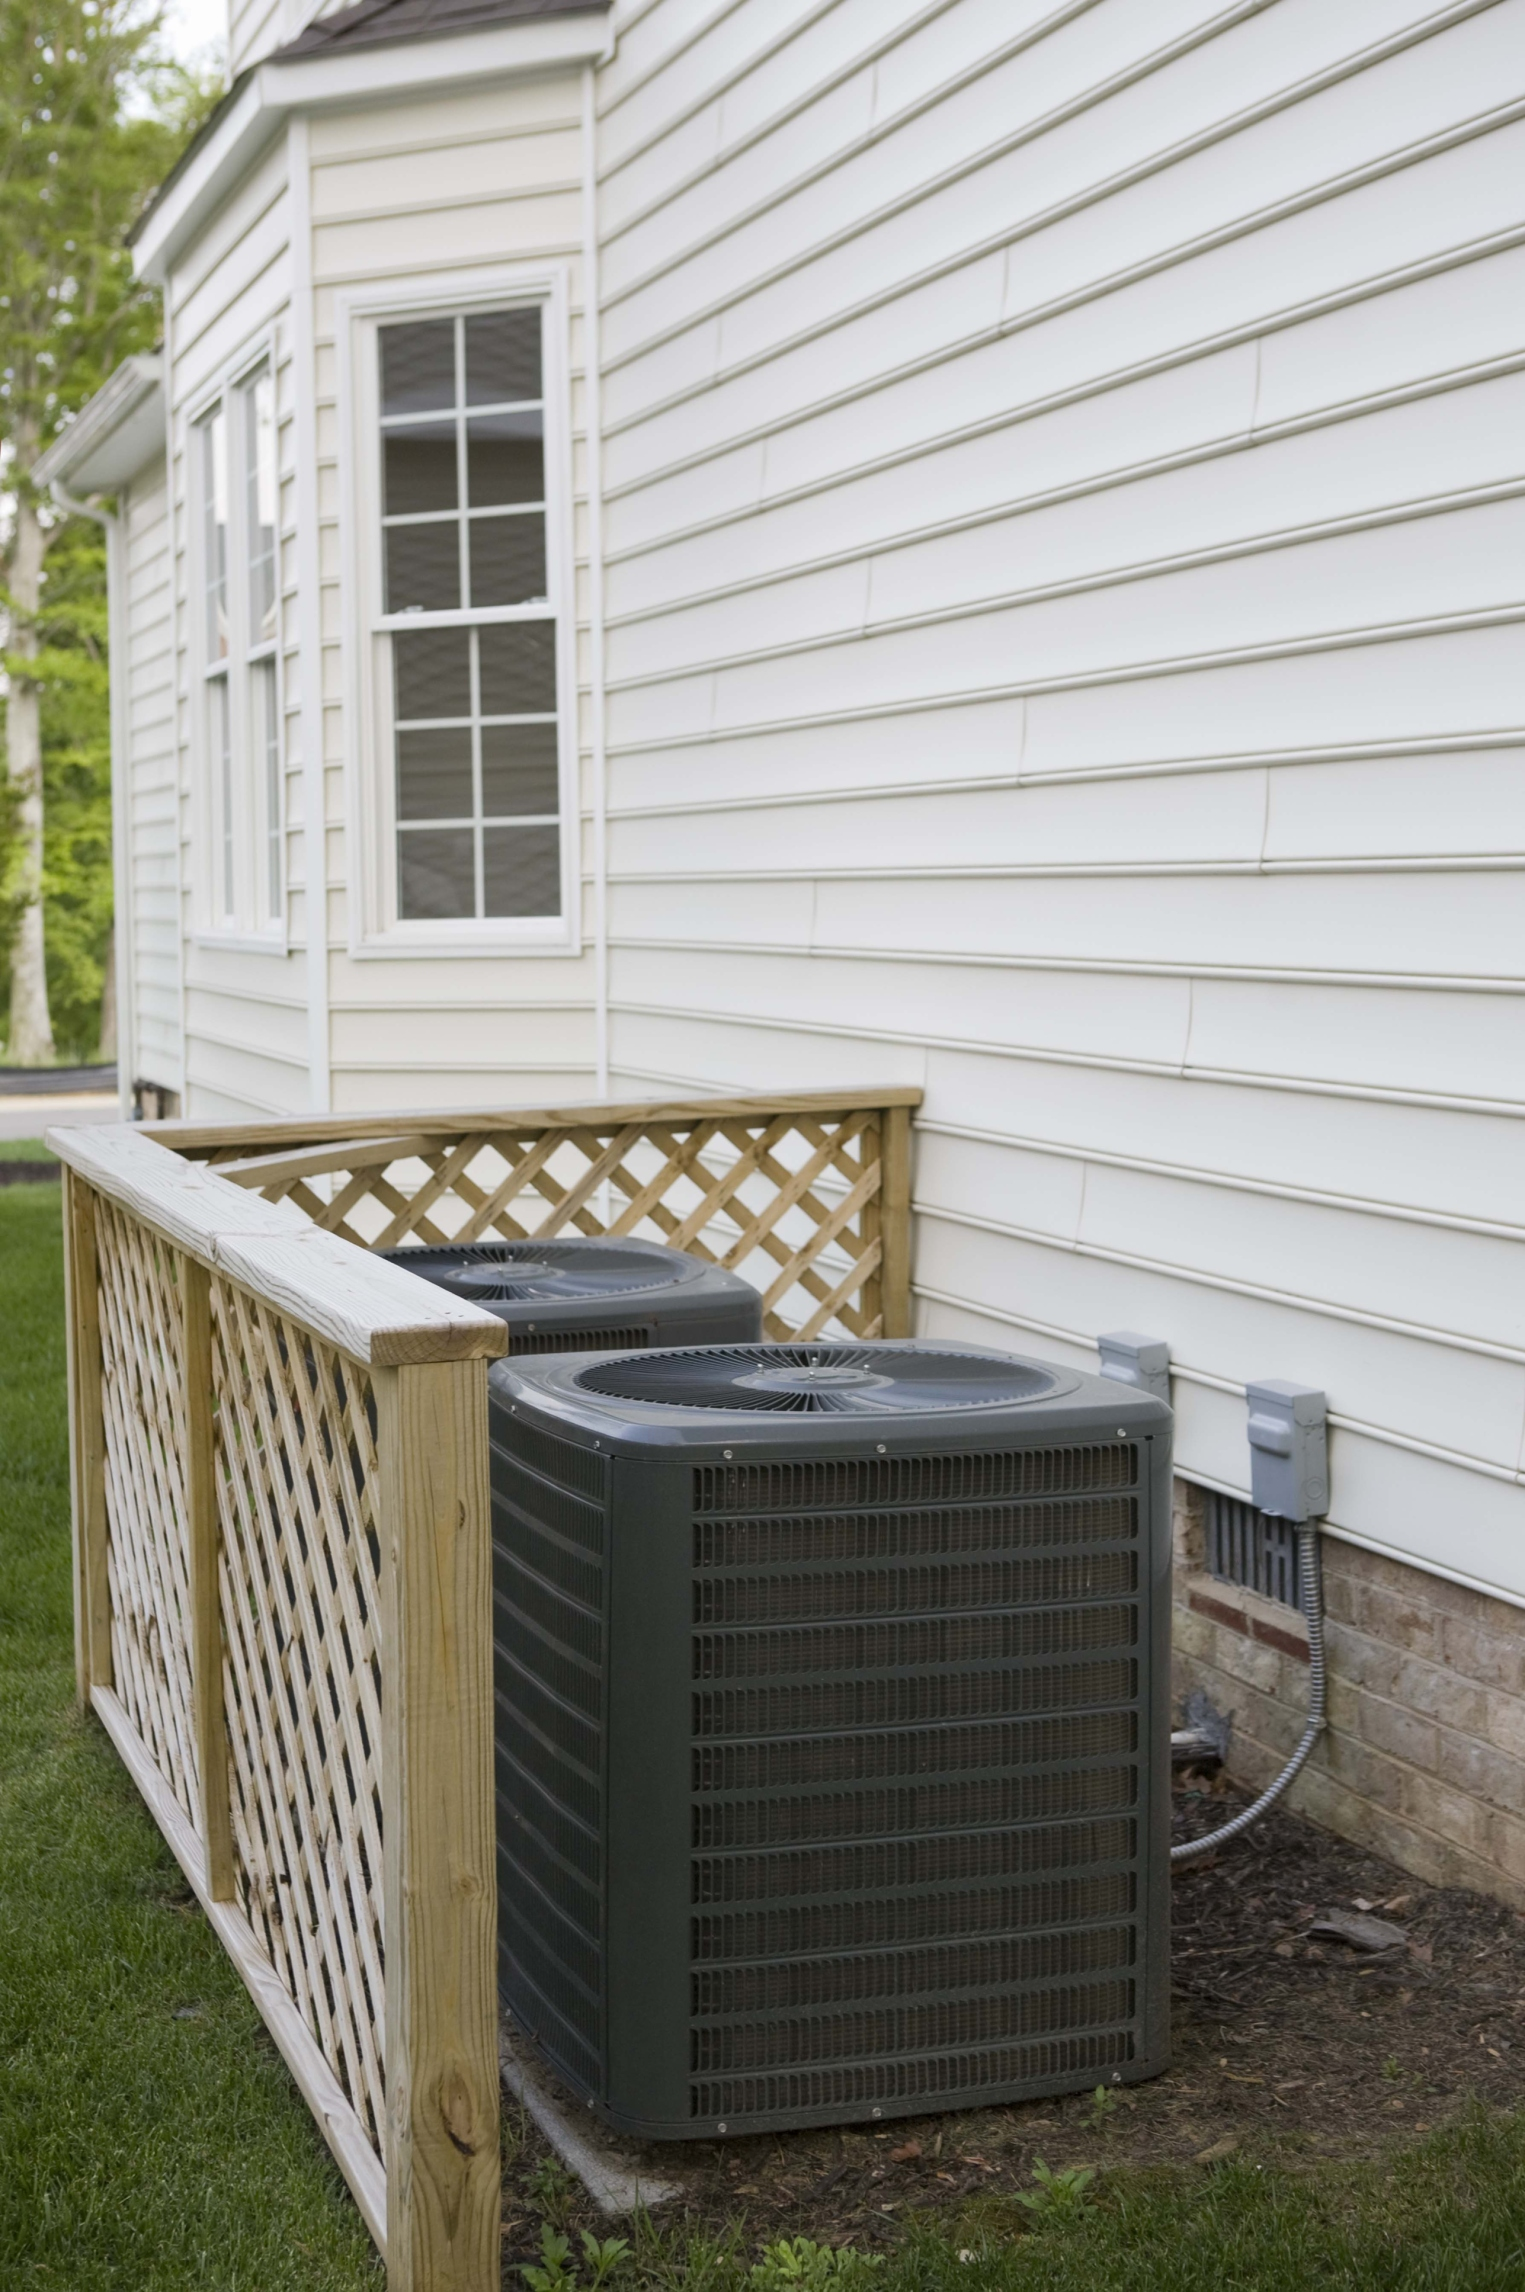 Marvelous How To Know If A Central Air Conditioner Needs A Charge | Home Guides | SF  Gate